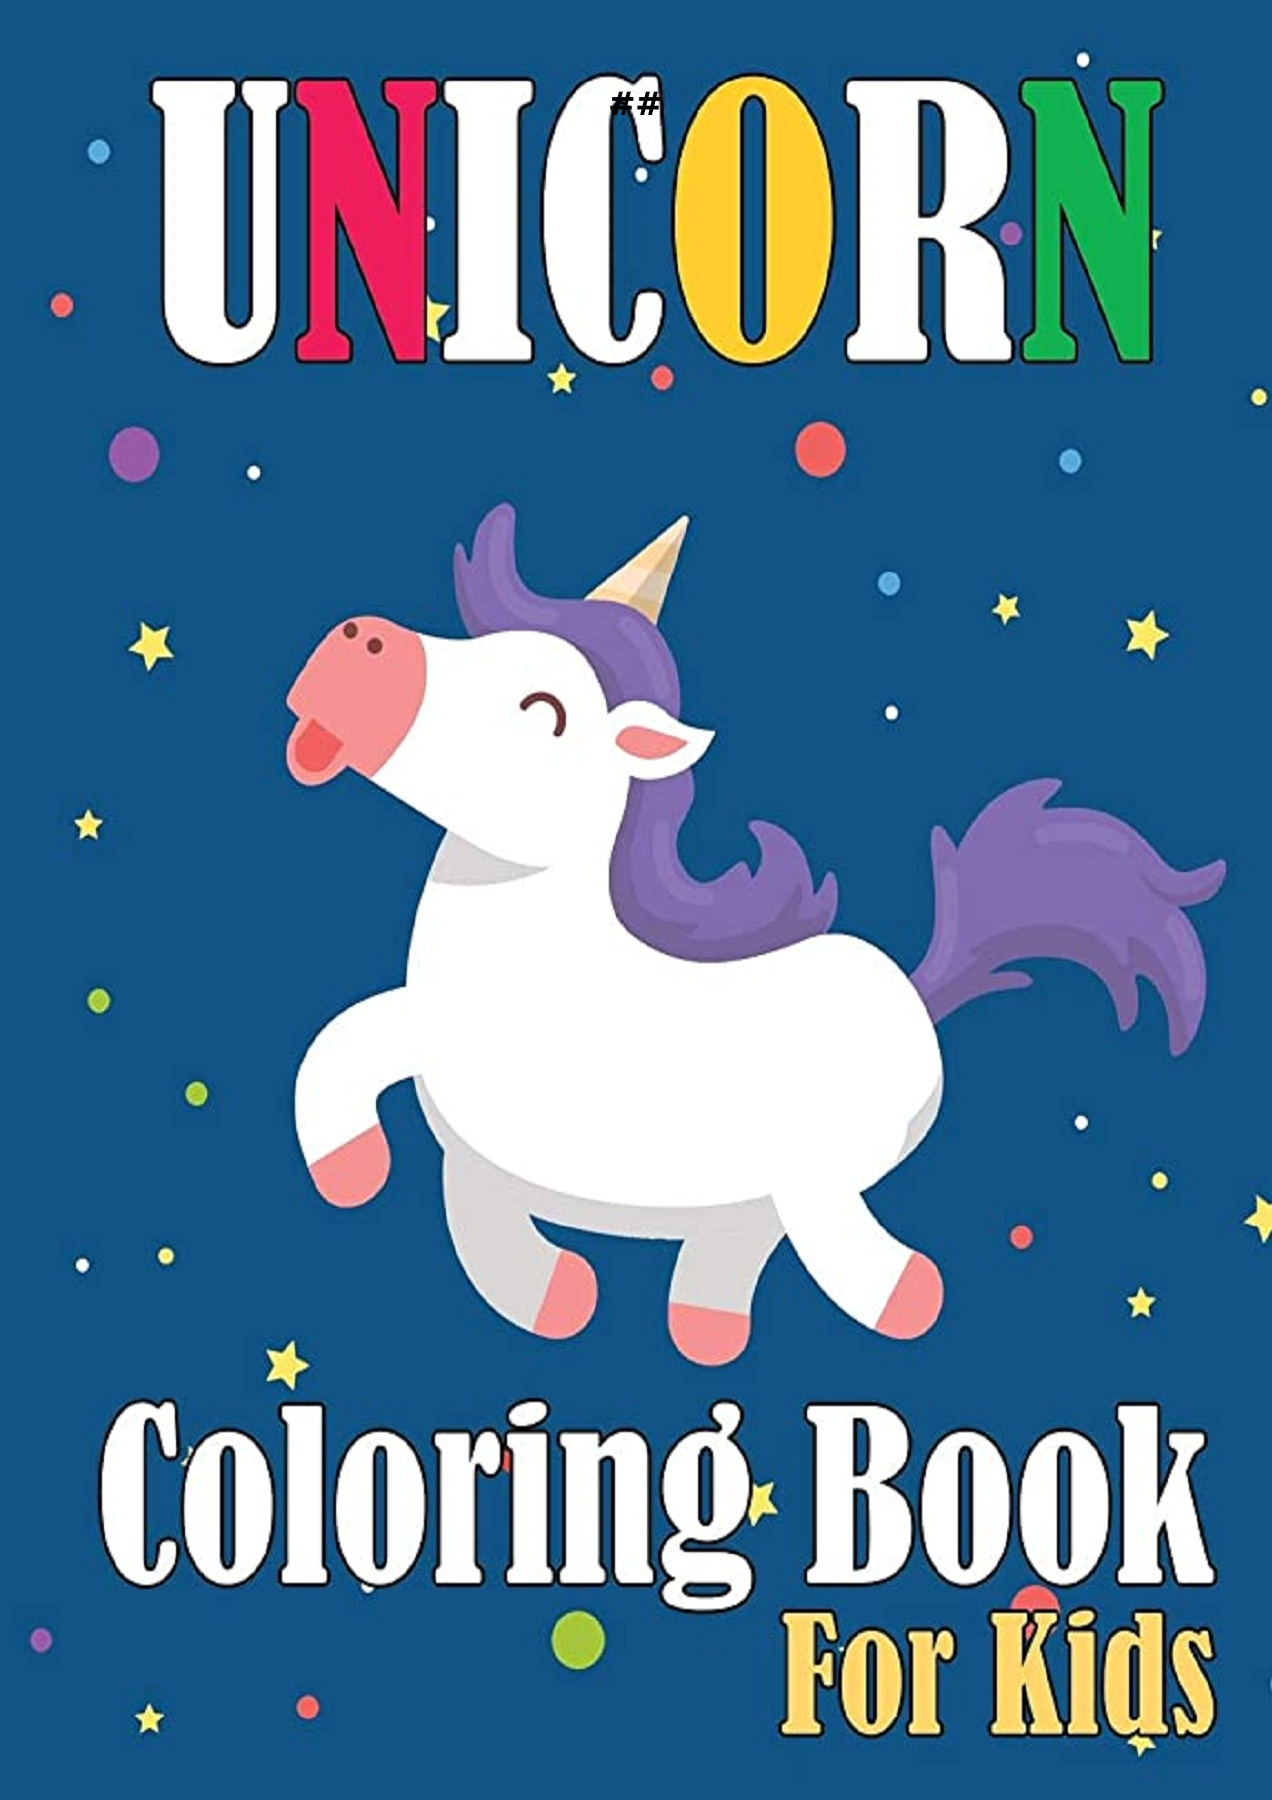 Audiobook Download Unicorn Coloring Book For Kids Unicorn For Beginners An Unicorn Coloring Book With Fun Easy And Relaxing Unicorn Coloring Pages Full Pages 1 5 Text Version Anyflip